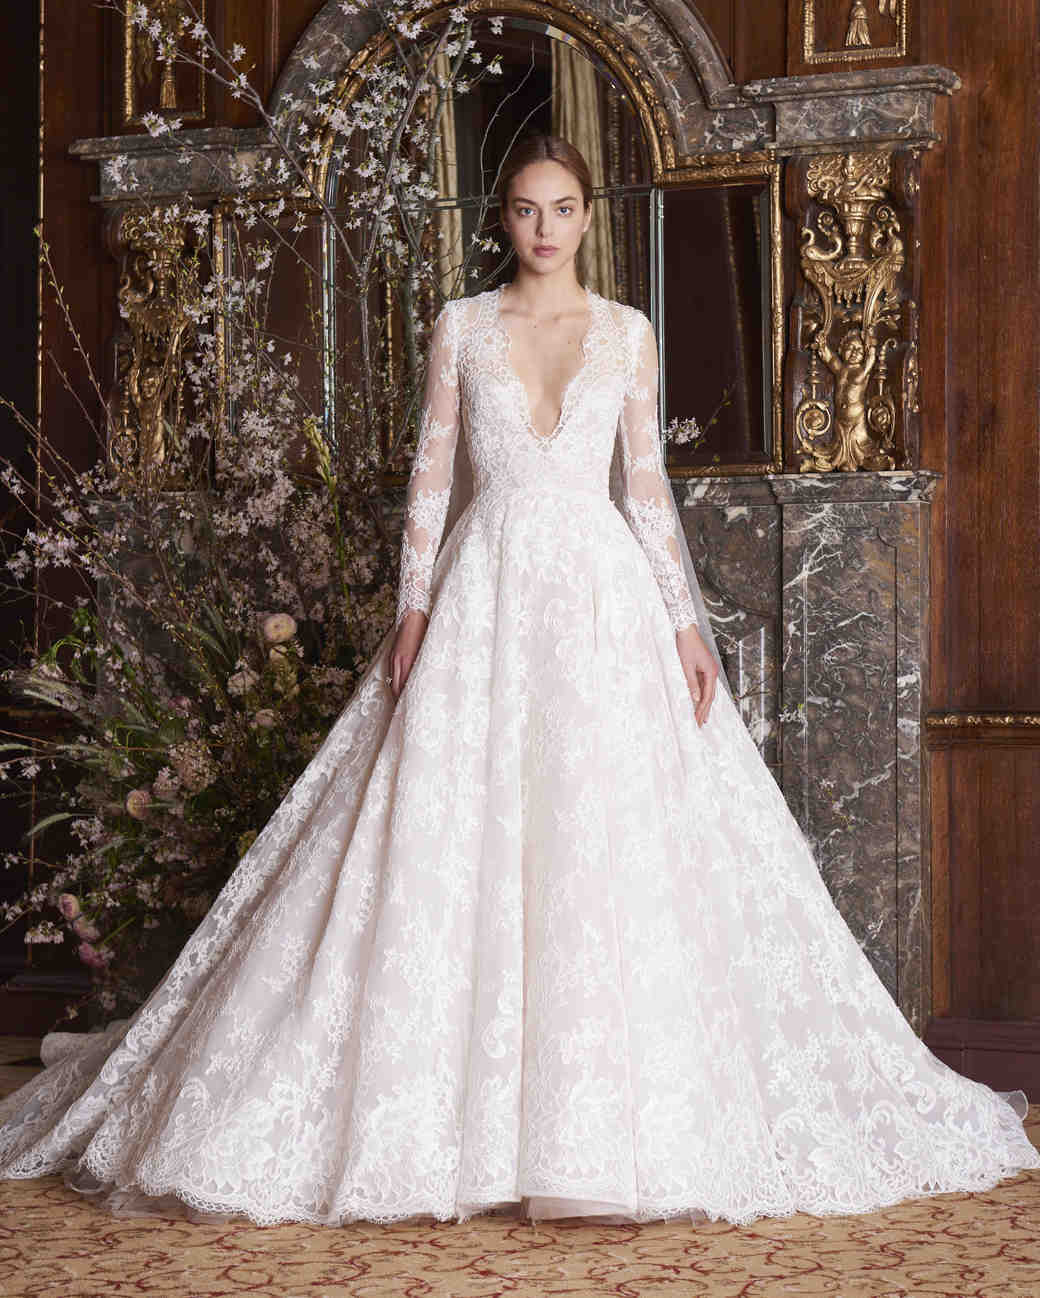 20 Long Sleeve Wedding Dresses We\'re Obsessed with - ChicWedd